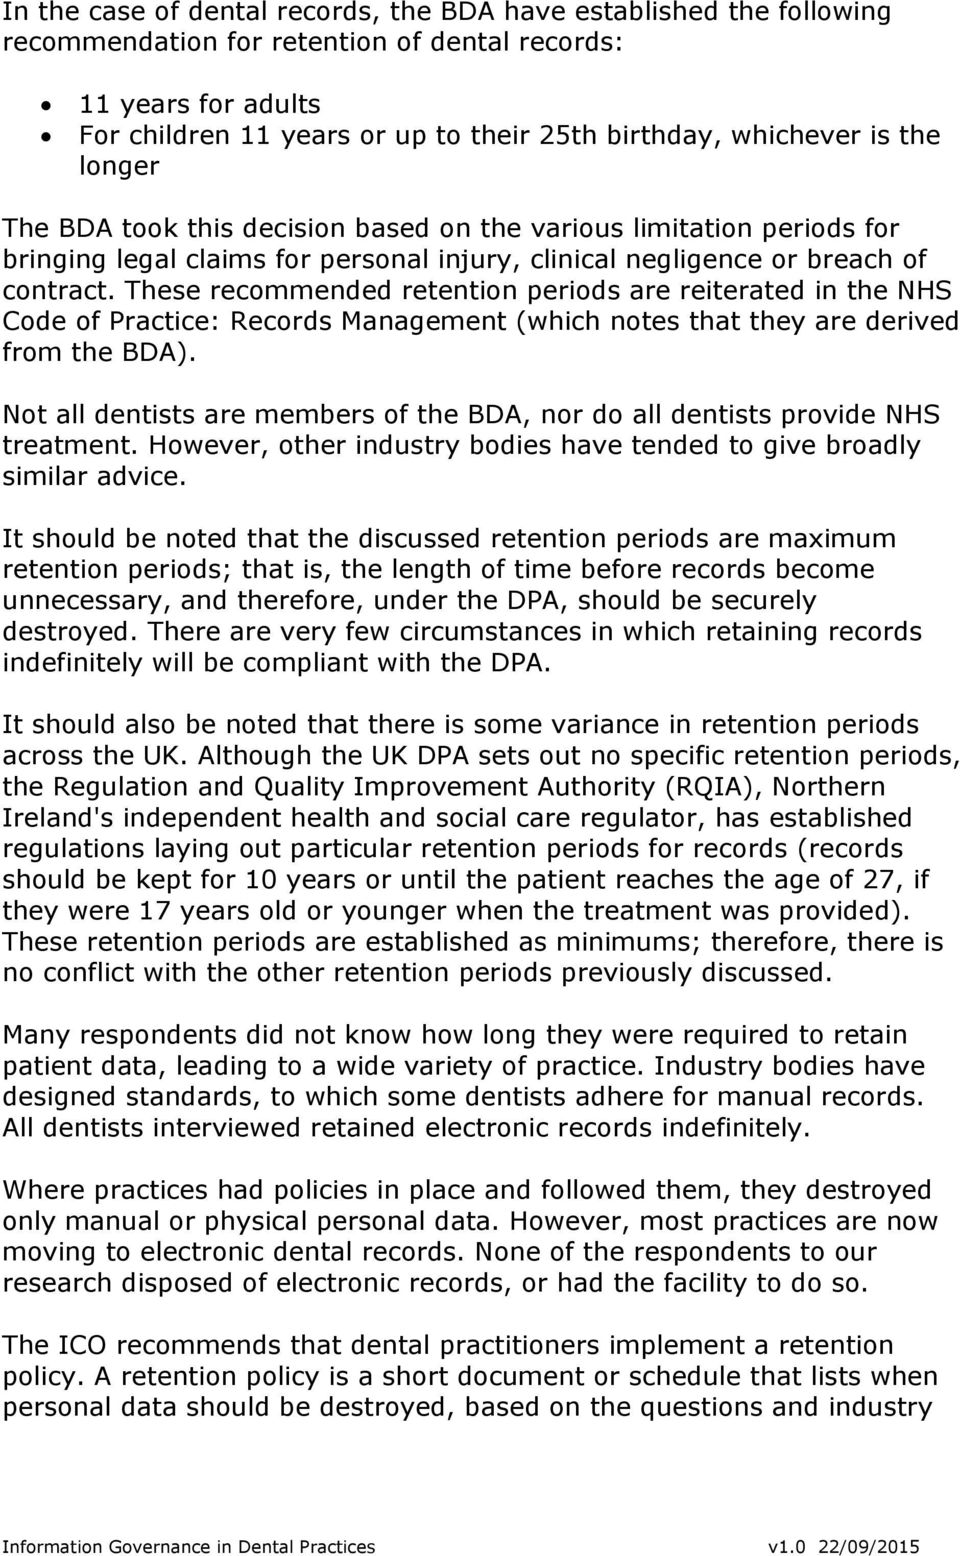 These recommended retention periods are reiterated in the NHS Code of Practice: Records Management (which notes that they are derived from the BDA).